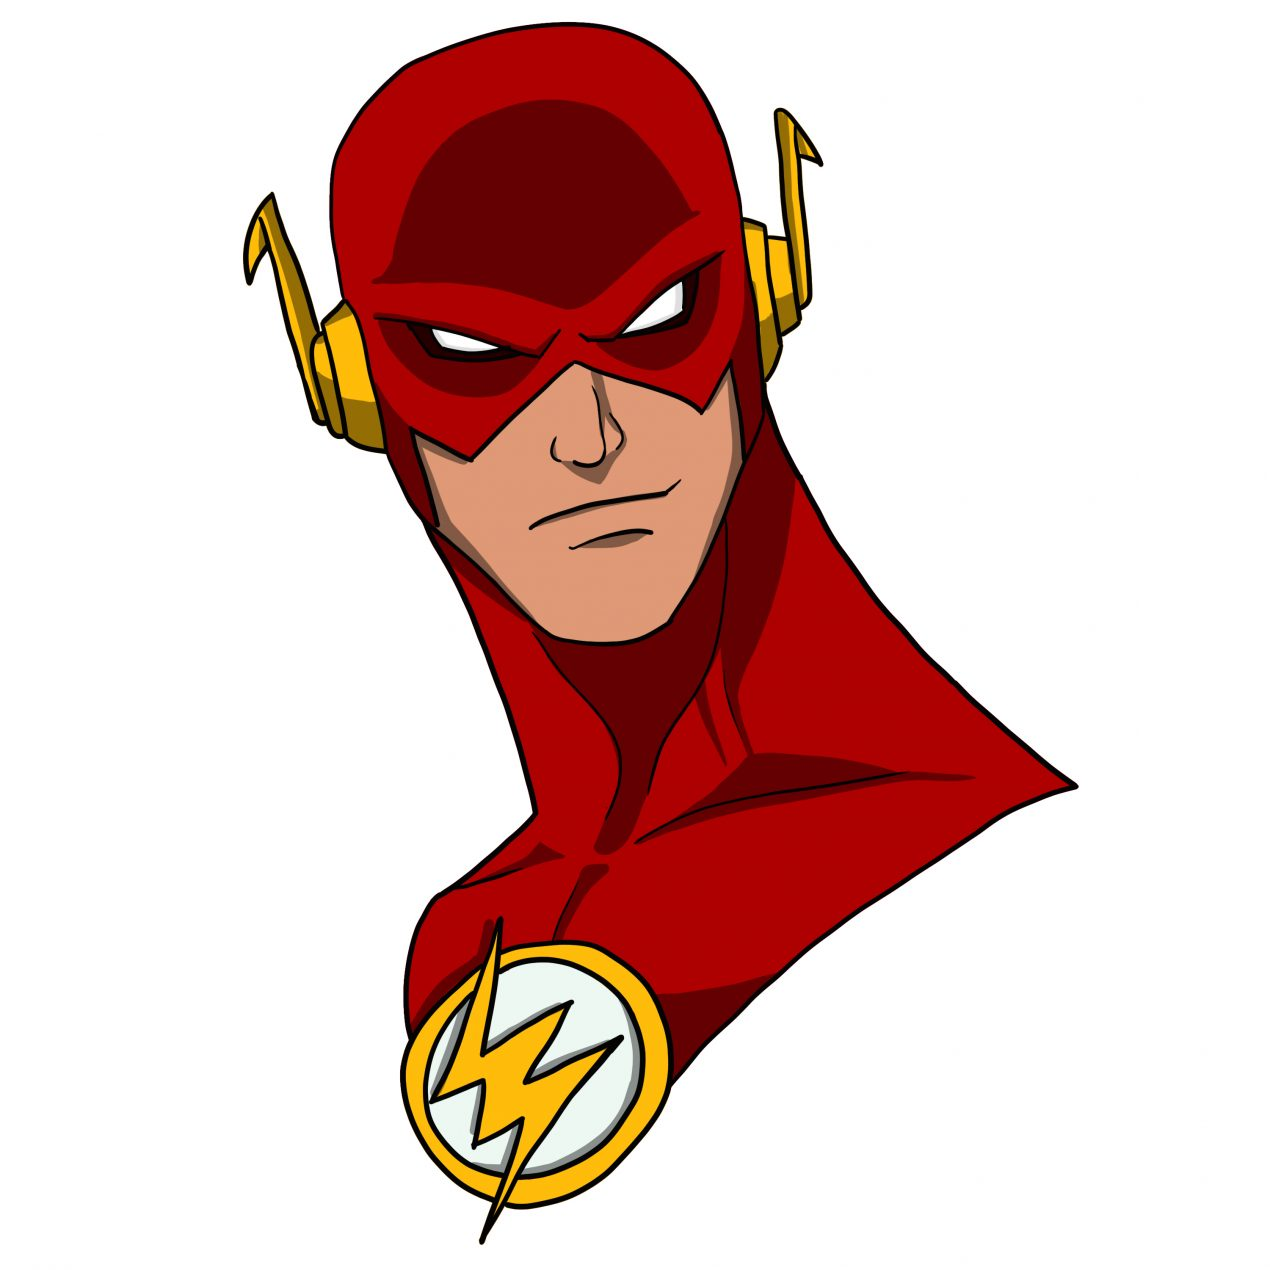 3 ways to Draw Flash From Beginner to Advance Level